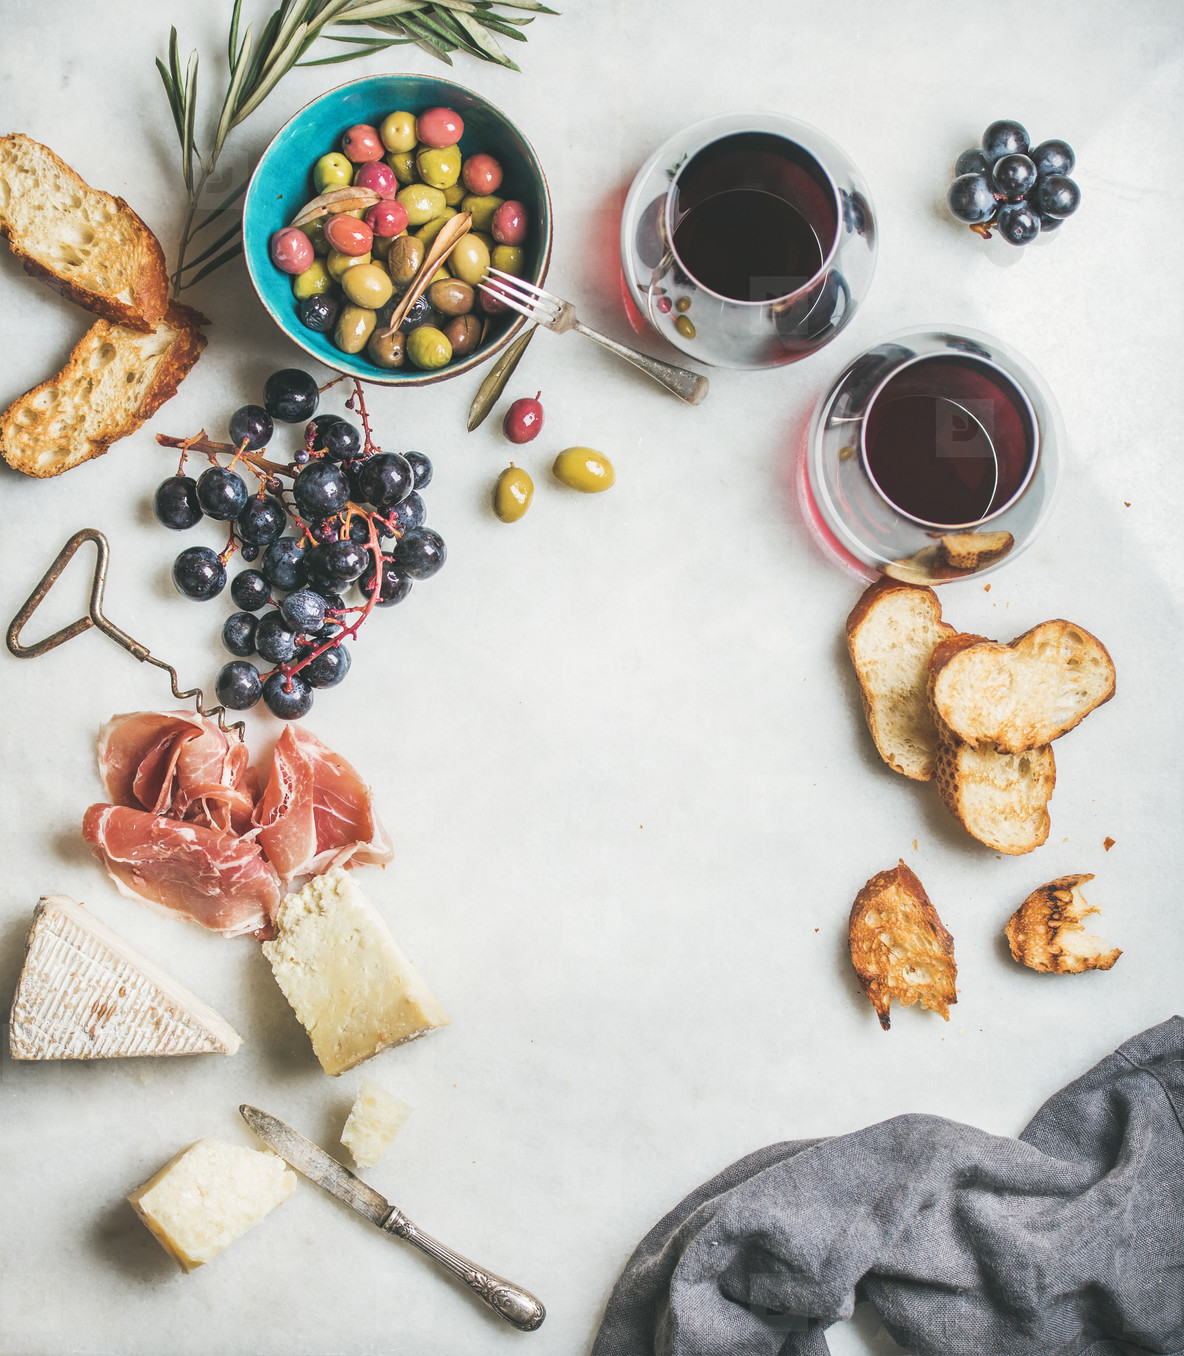 Cheese  olives  grapes  prosciutto  baguette and red wine  top view